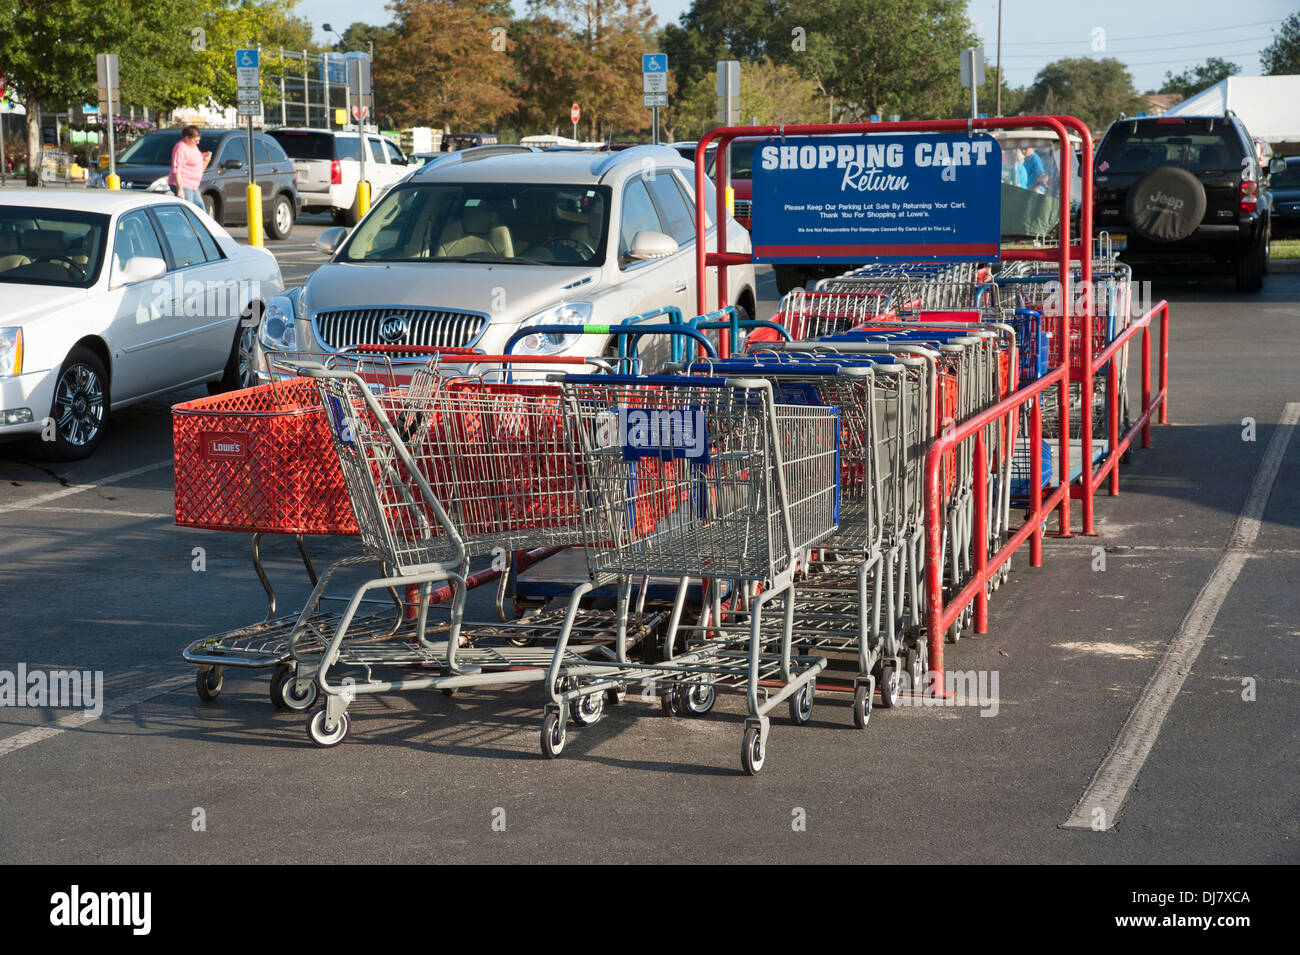 Shopping Cart Return Area In An American Supermarket Car Park Stock Photo Royalty Free Image